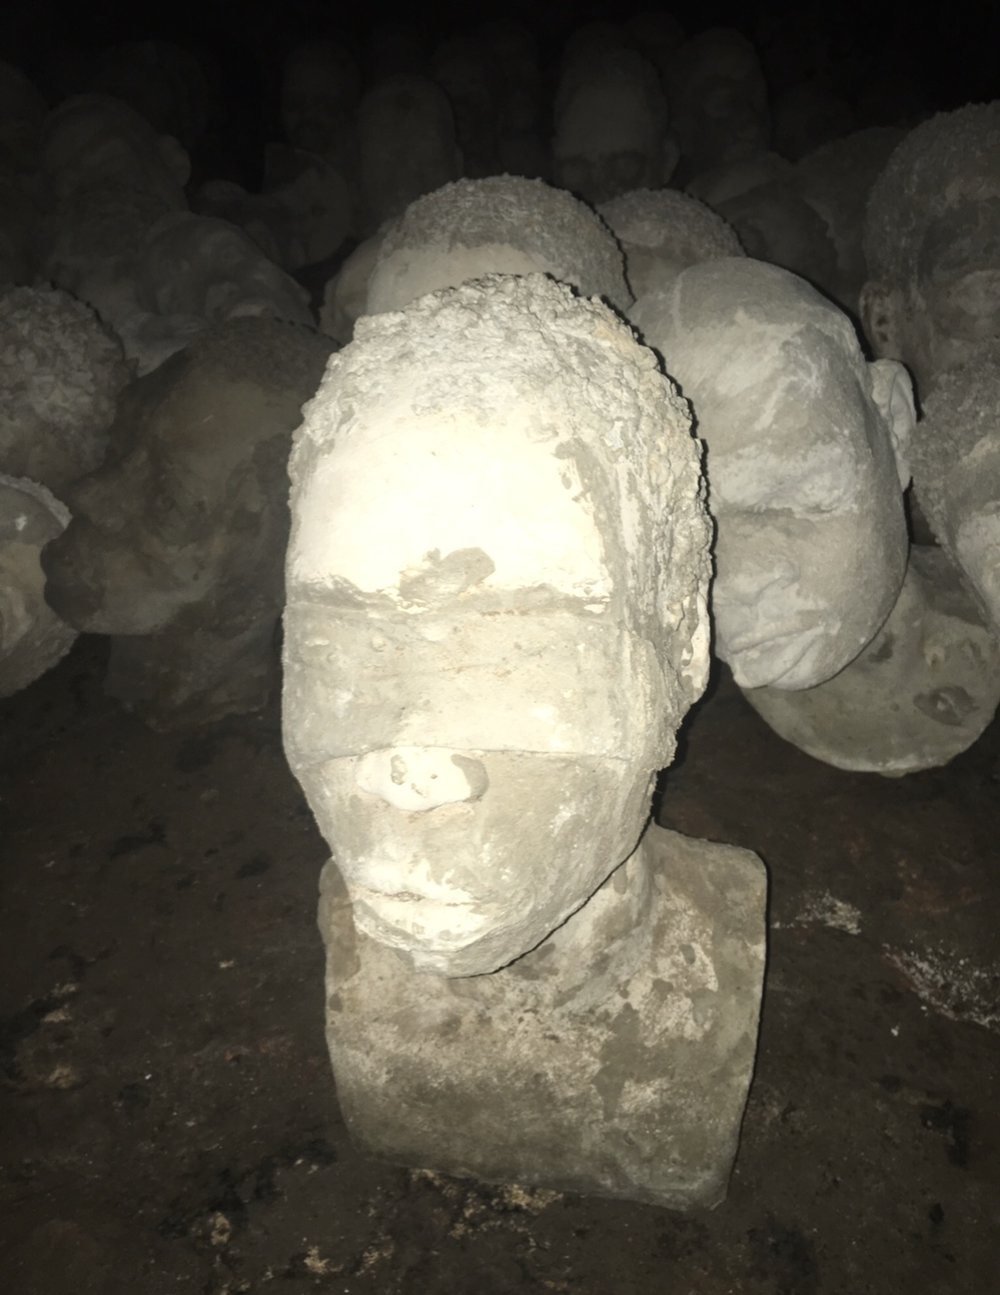 In the dungeons, 1,300 concrete heads are on display that depict some of the lives that were transplanted. Each is different and show the possible faces of Africans slaved at Cape Coast Castle.